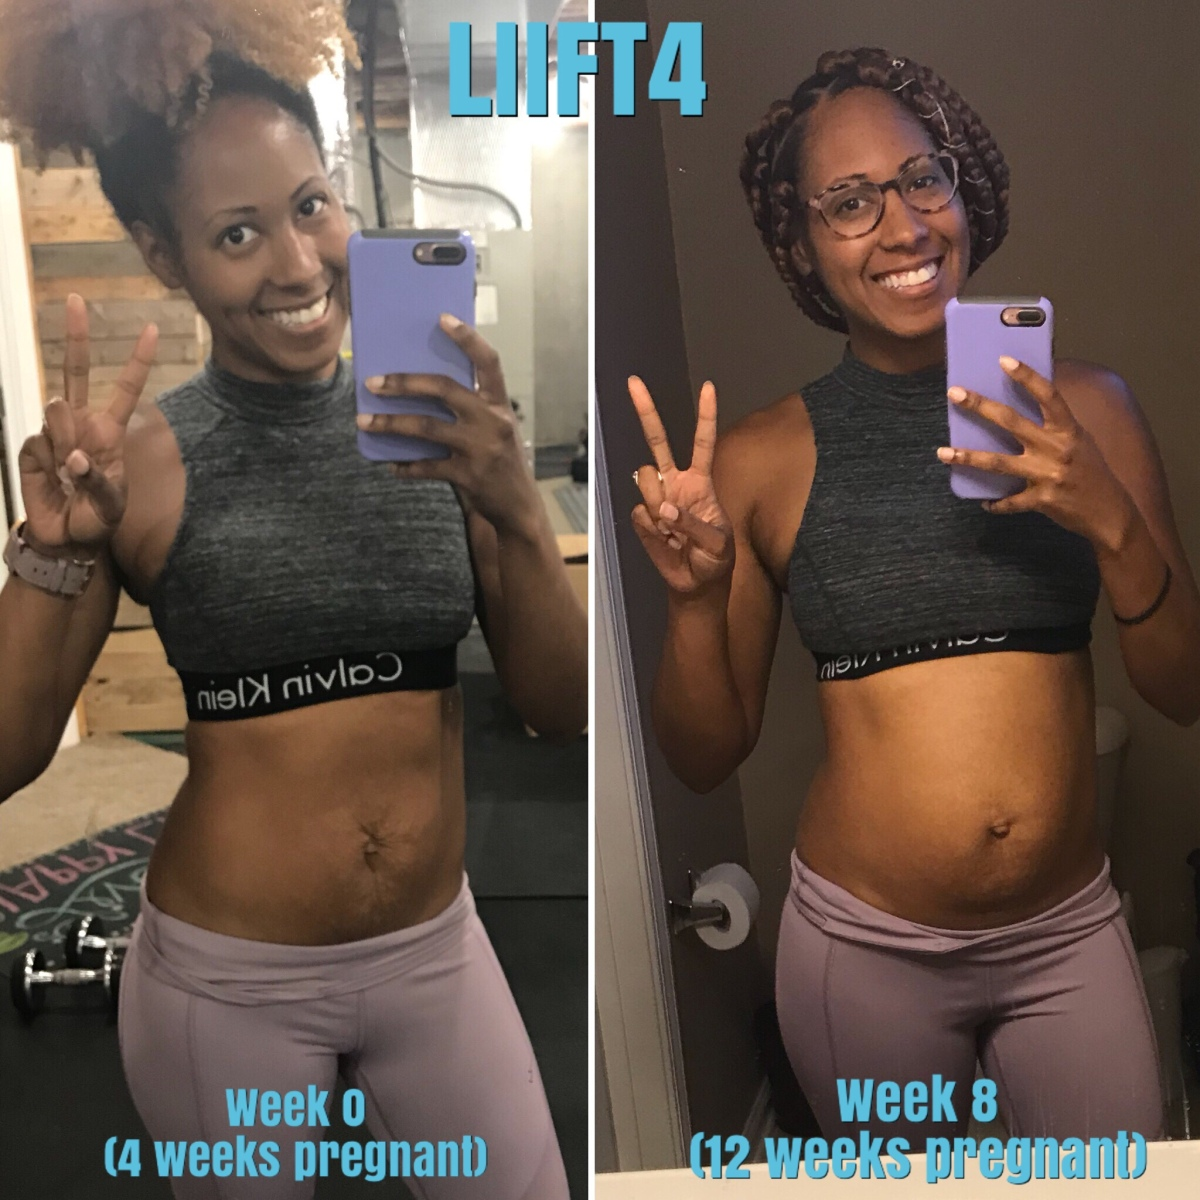 LIIFT4 results and review